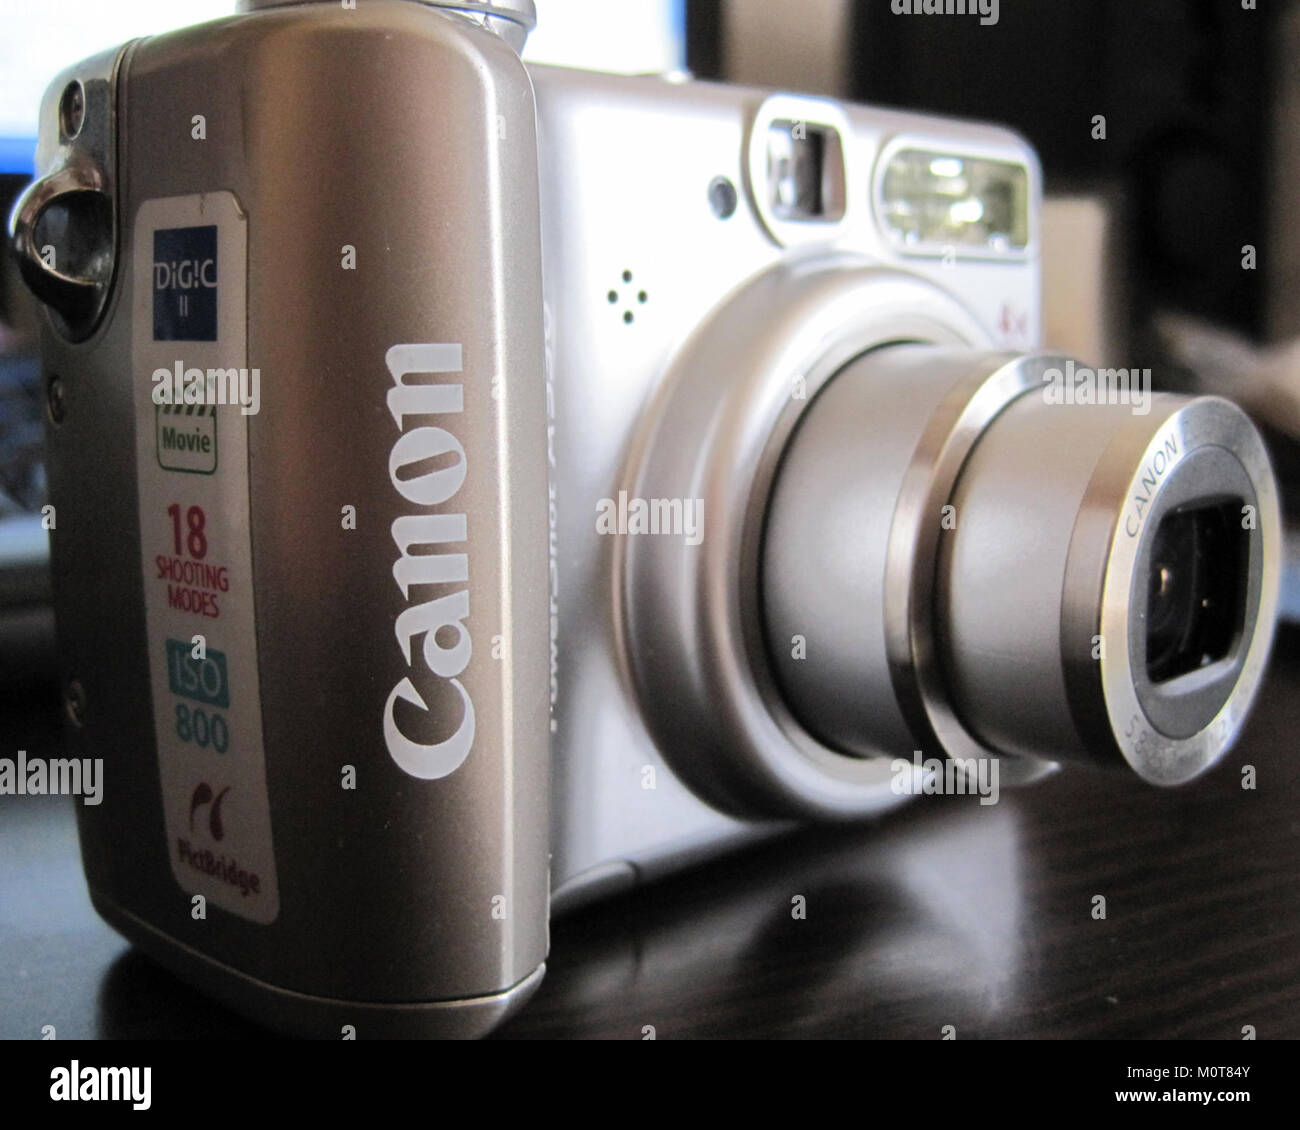 canon powershot a530 stock photo 172636939 alamy rh alamy com canon powershot a520 user manual canon powershot a530 user manual how to videos